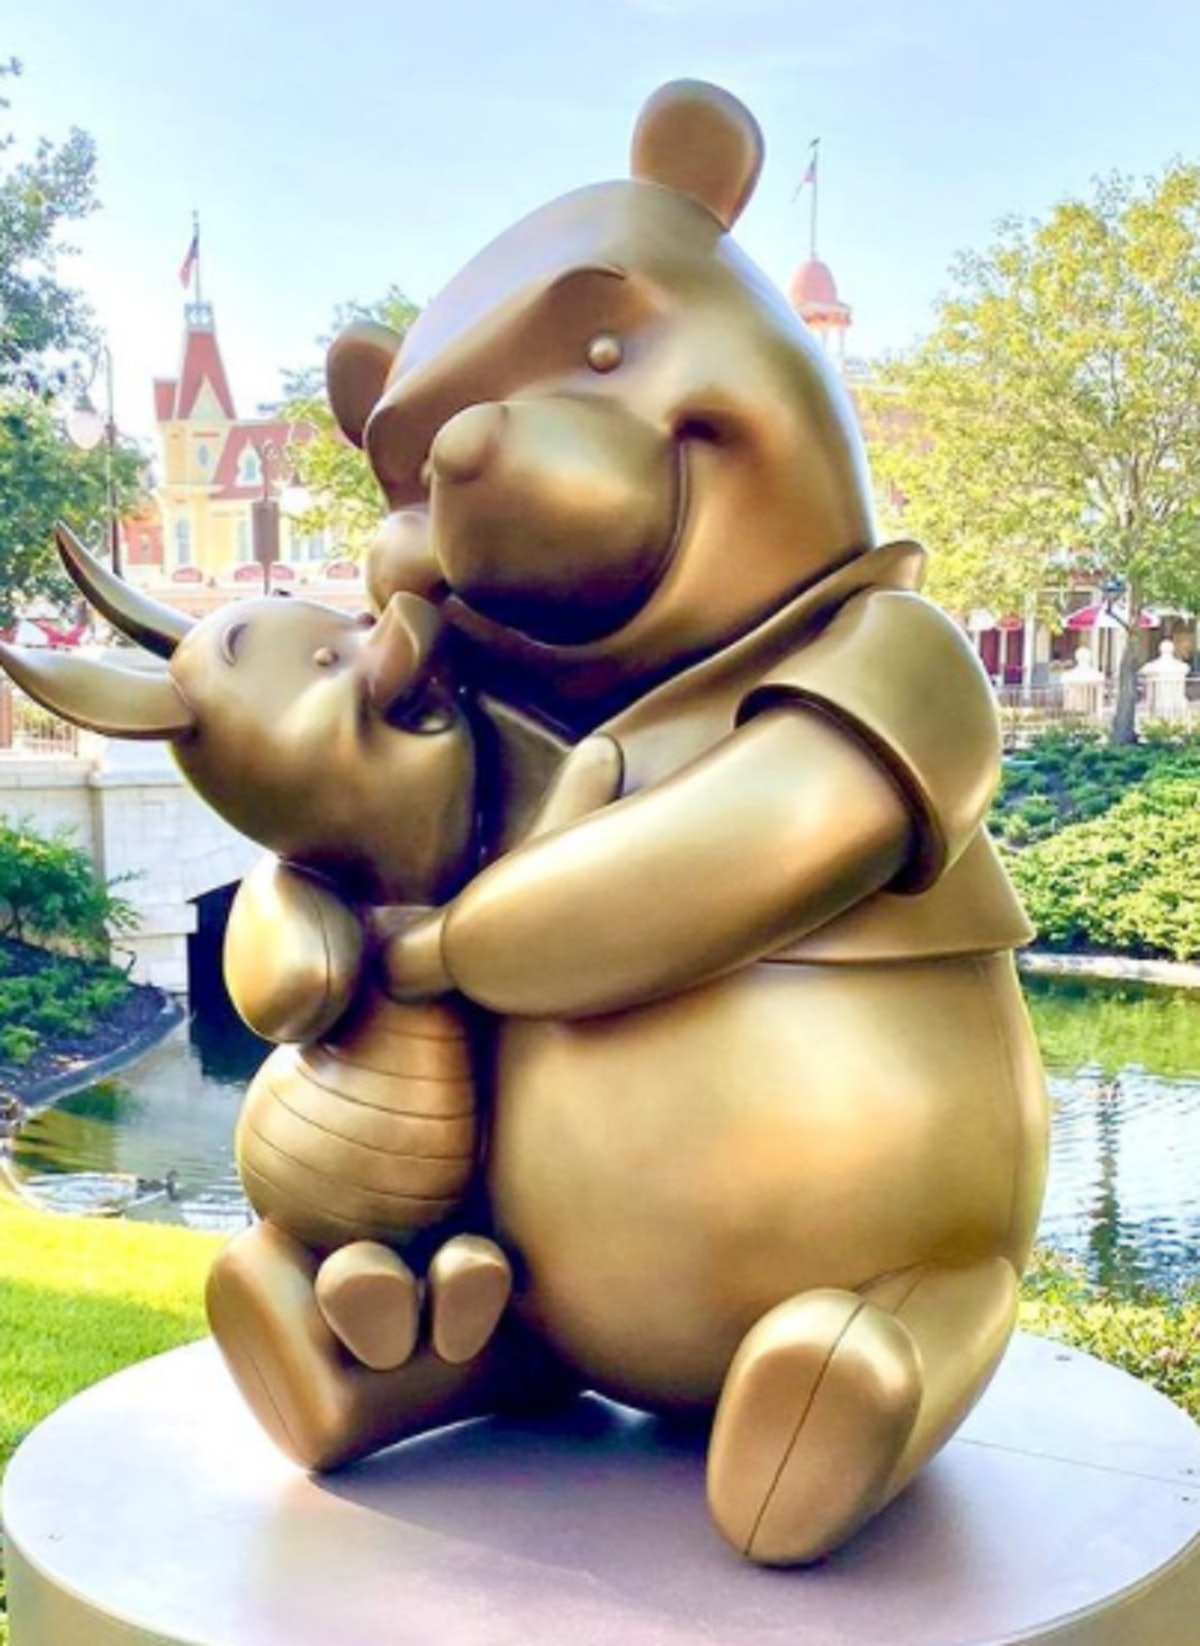 These photos of Disney's gold statues for the 50th anniversary feature one of Winnie the Pooh and Pi...